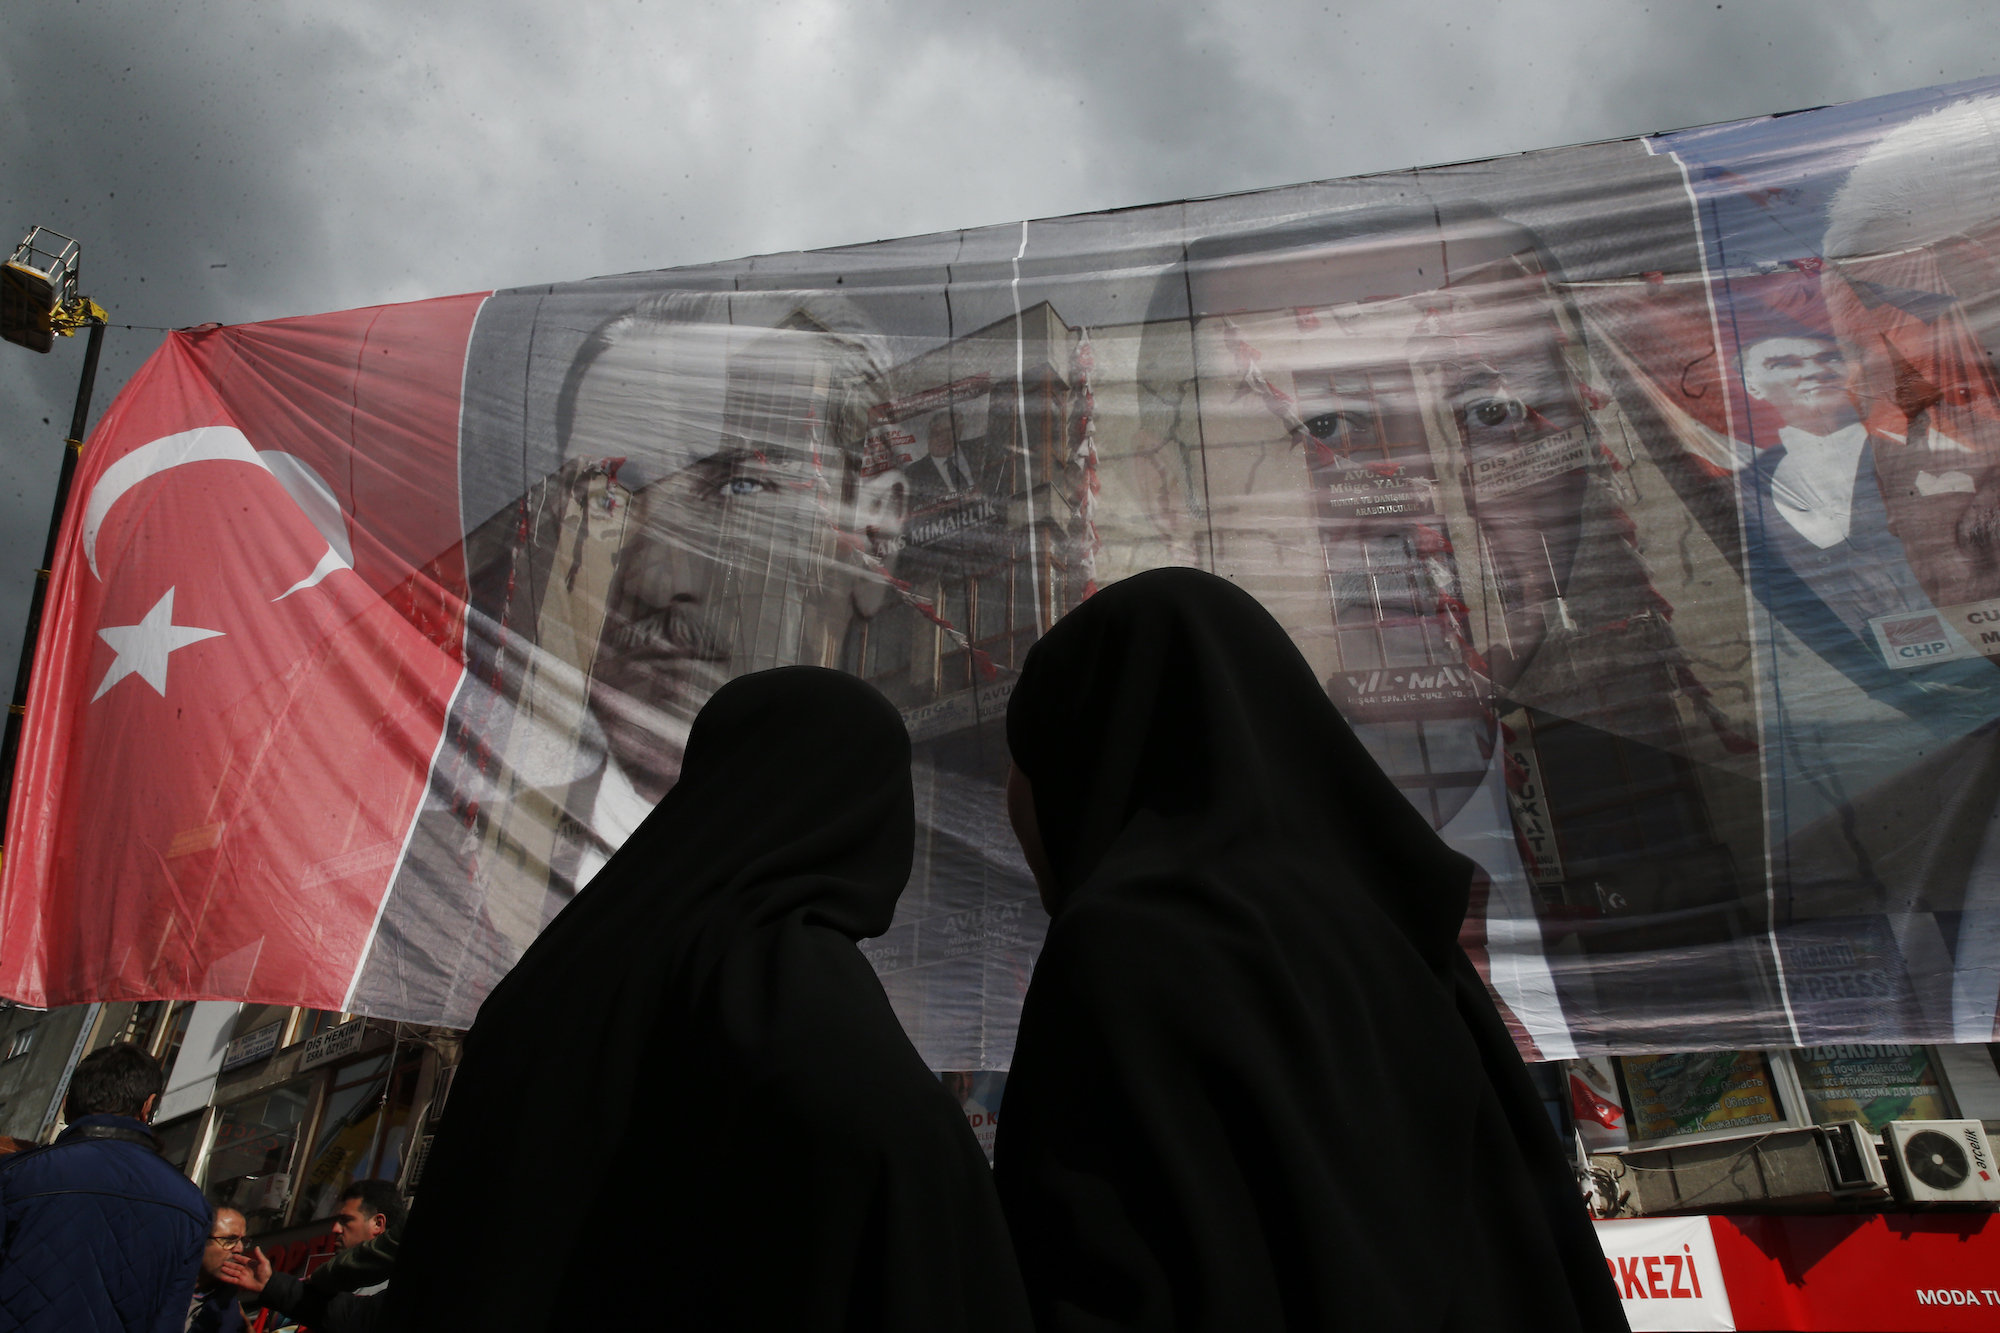 Supporters of Turkey's President Recep Tayyip Erdogan, backdropped by banners of Turkish Republic founder Mustafa Kemal Ataturk, left, and Erdogan, right, leave a rally of the ruling Justice and Development Party, in Istanbul, Turkey, March 29. (AP Photo/Lefteris Pitarakis)